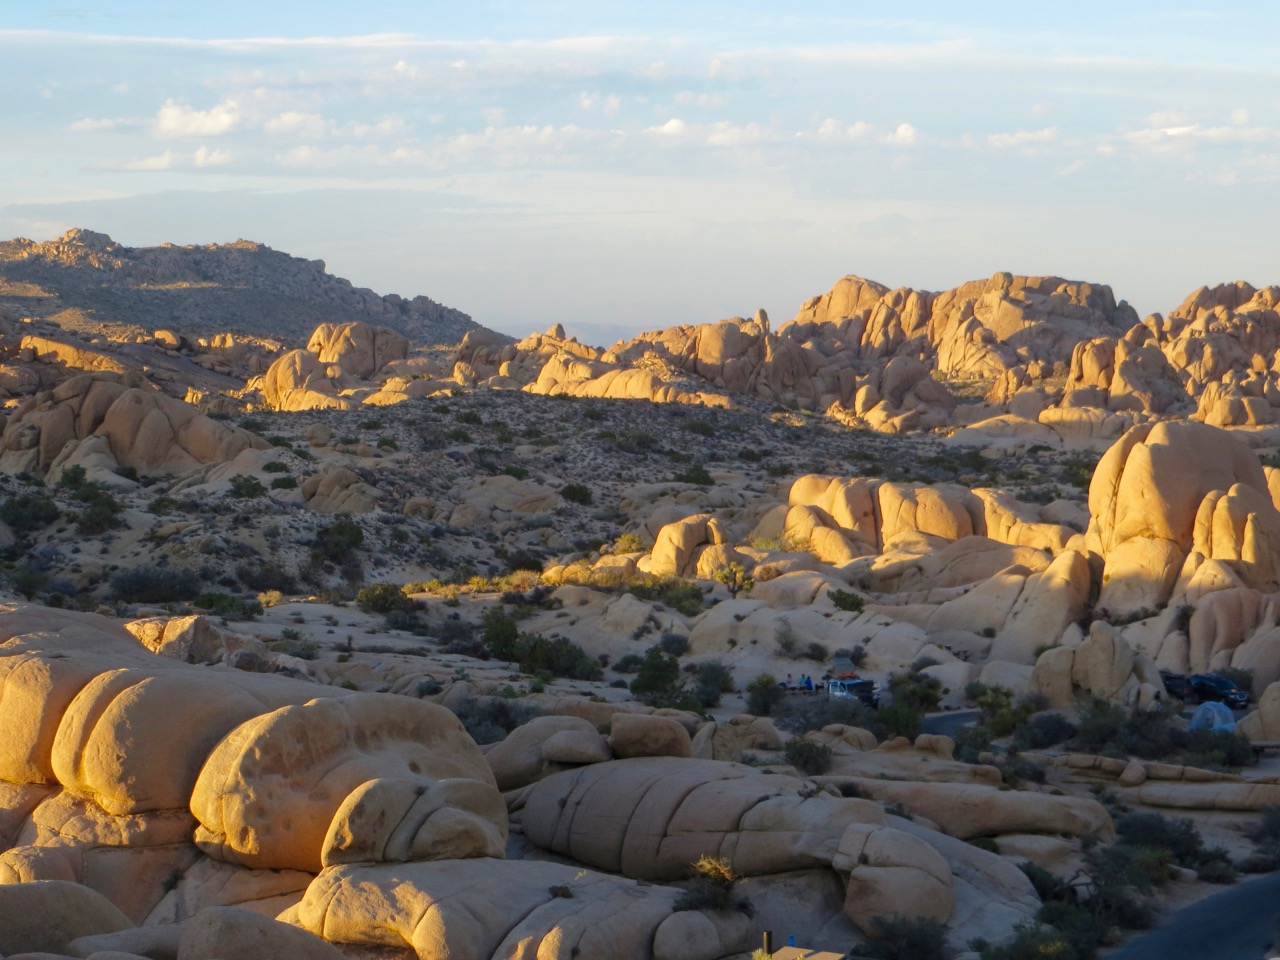 Jumbo Rocks campground sunset, Joshua Tree